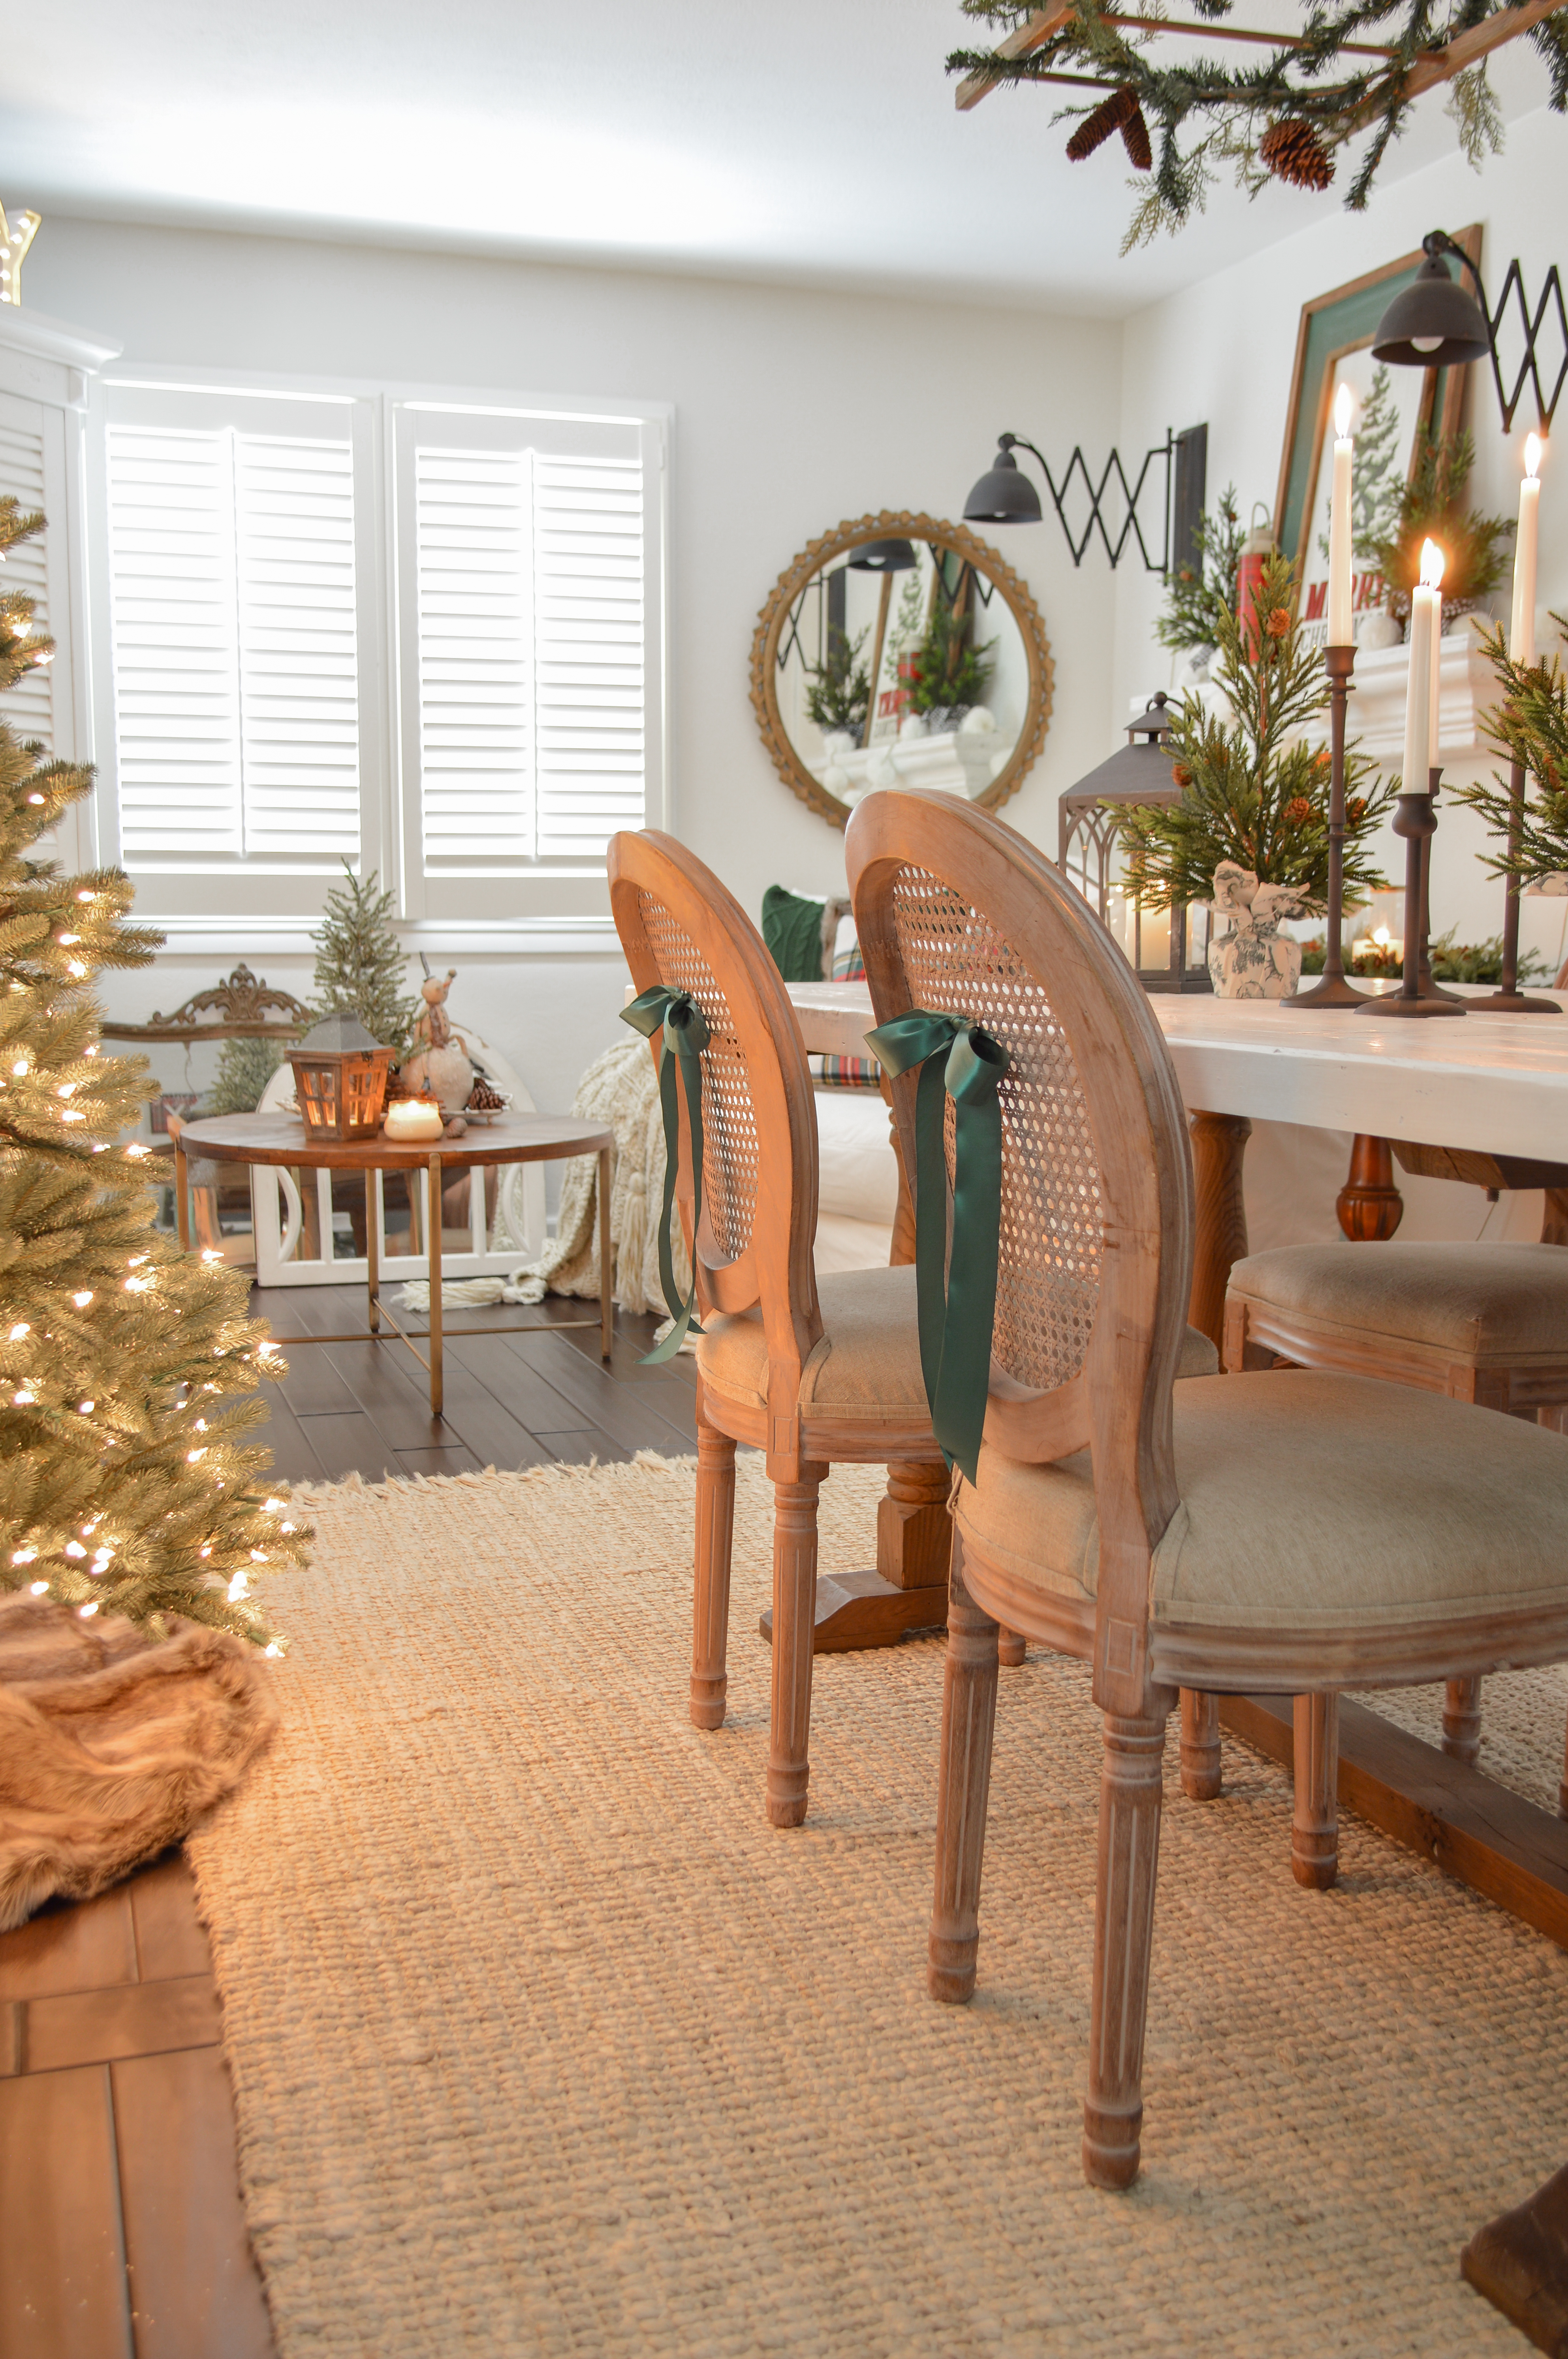 Holiday Housewalk Merry Christmas Home Tour - Cozy little 1920's cottage home decorated for Christmastime - full of affordable, easy ideas, vintage finds and DIY projects! #holidayhousewalk #christmashometour #cozychristmas #cottagechristmas #farmhousechristmas